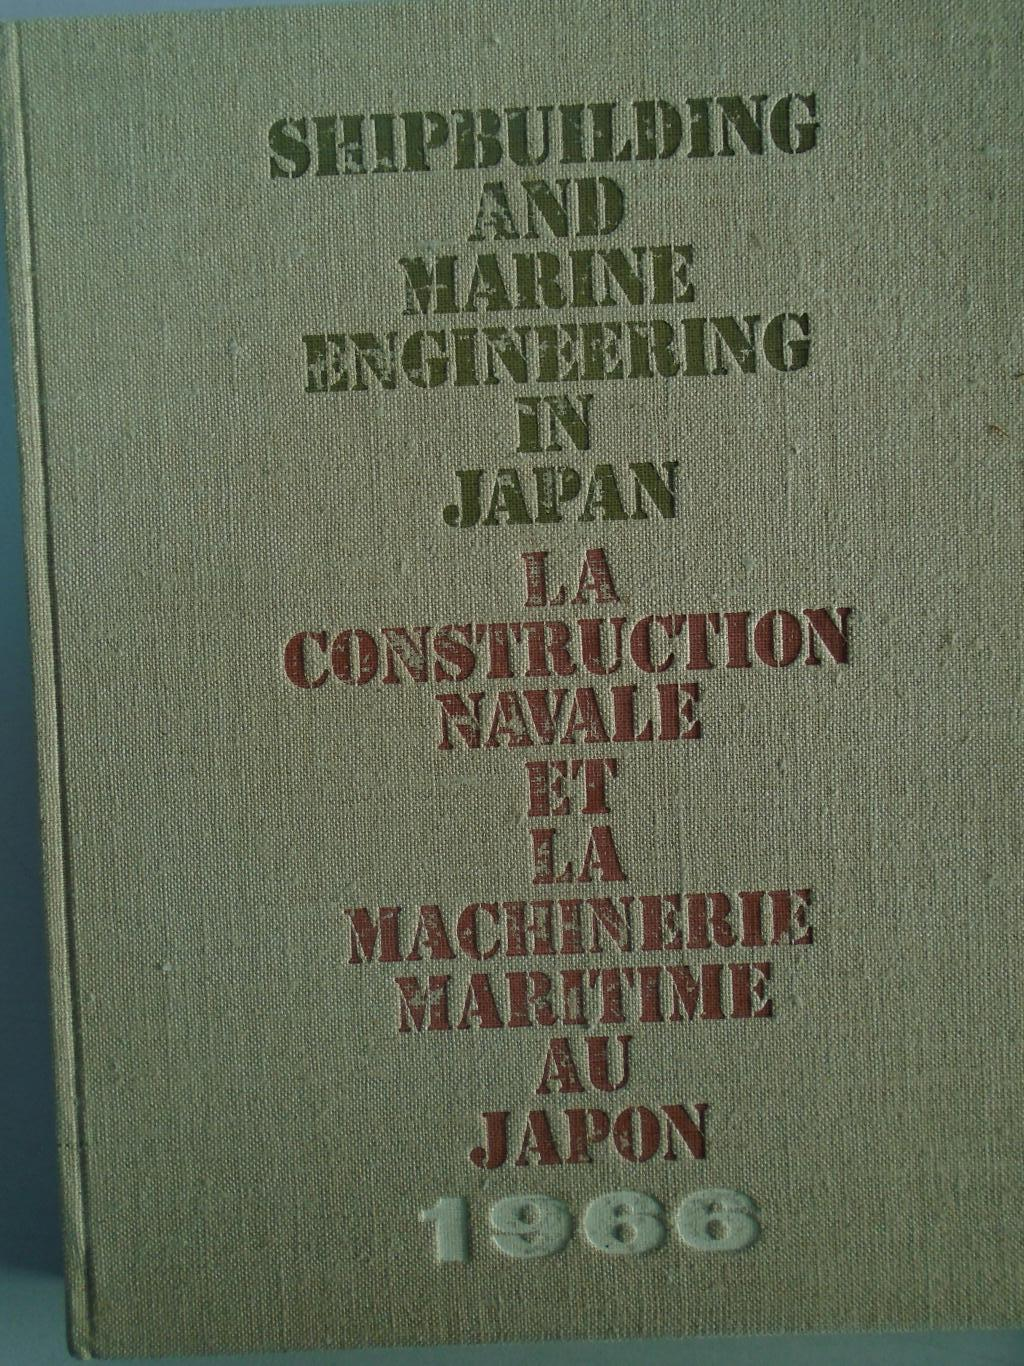 Shipbuilding and Marine engineering in Japan,